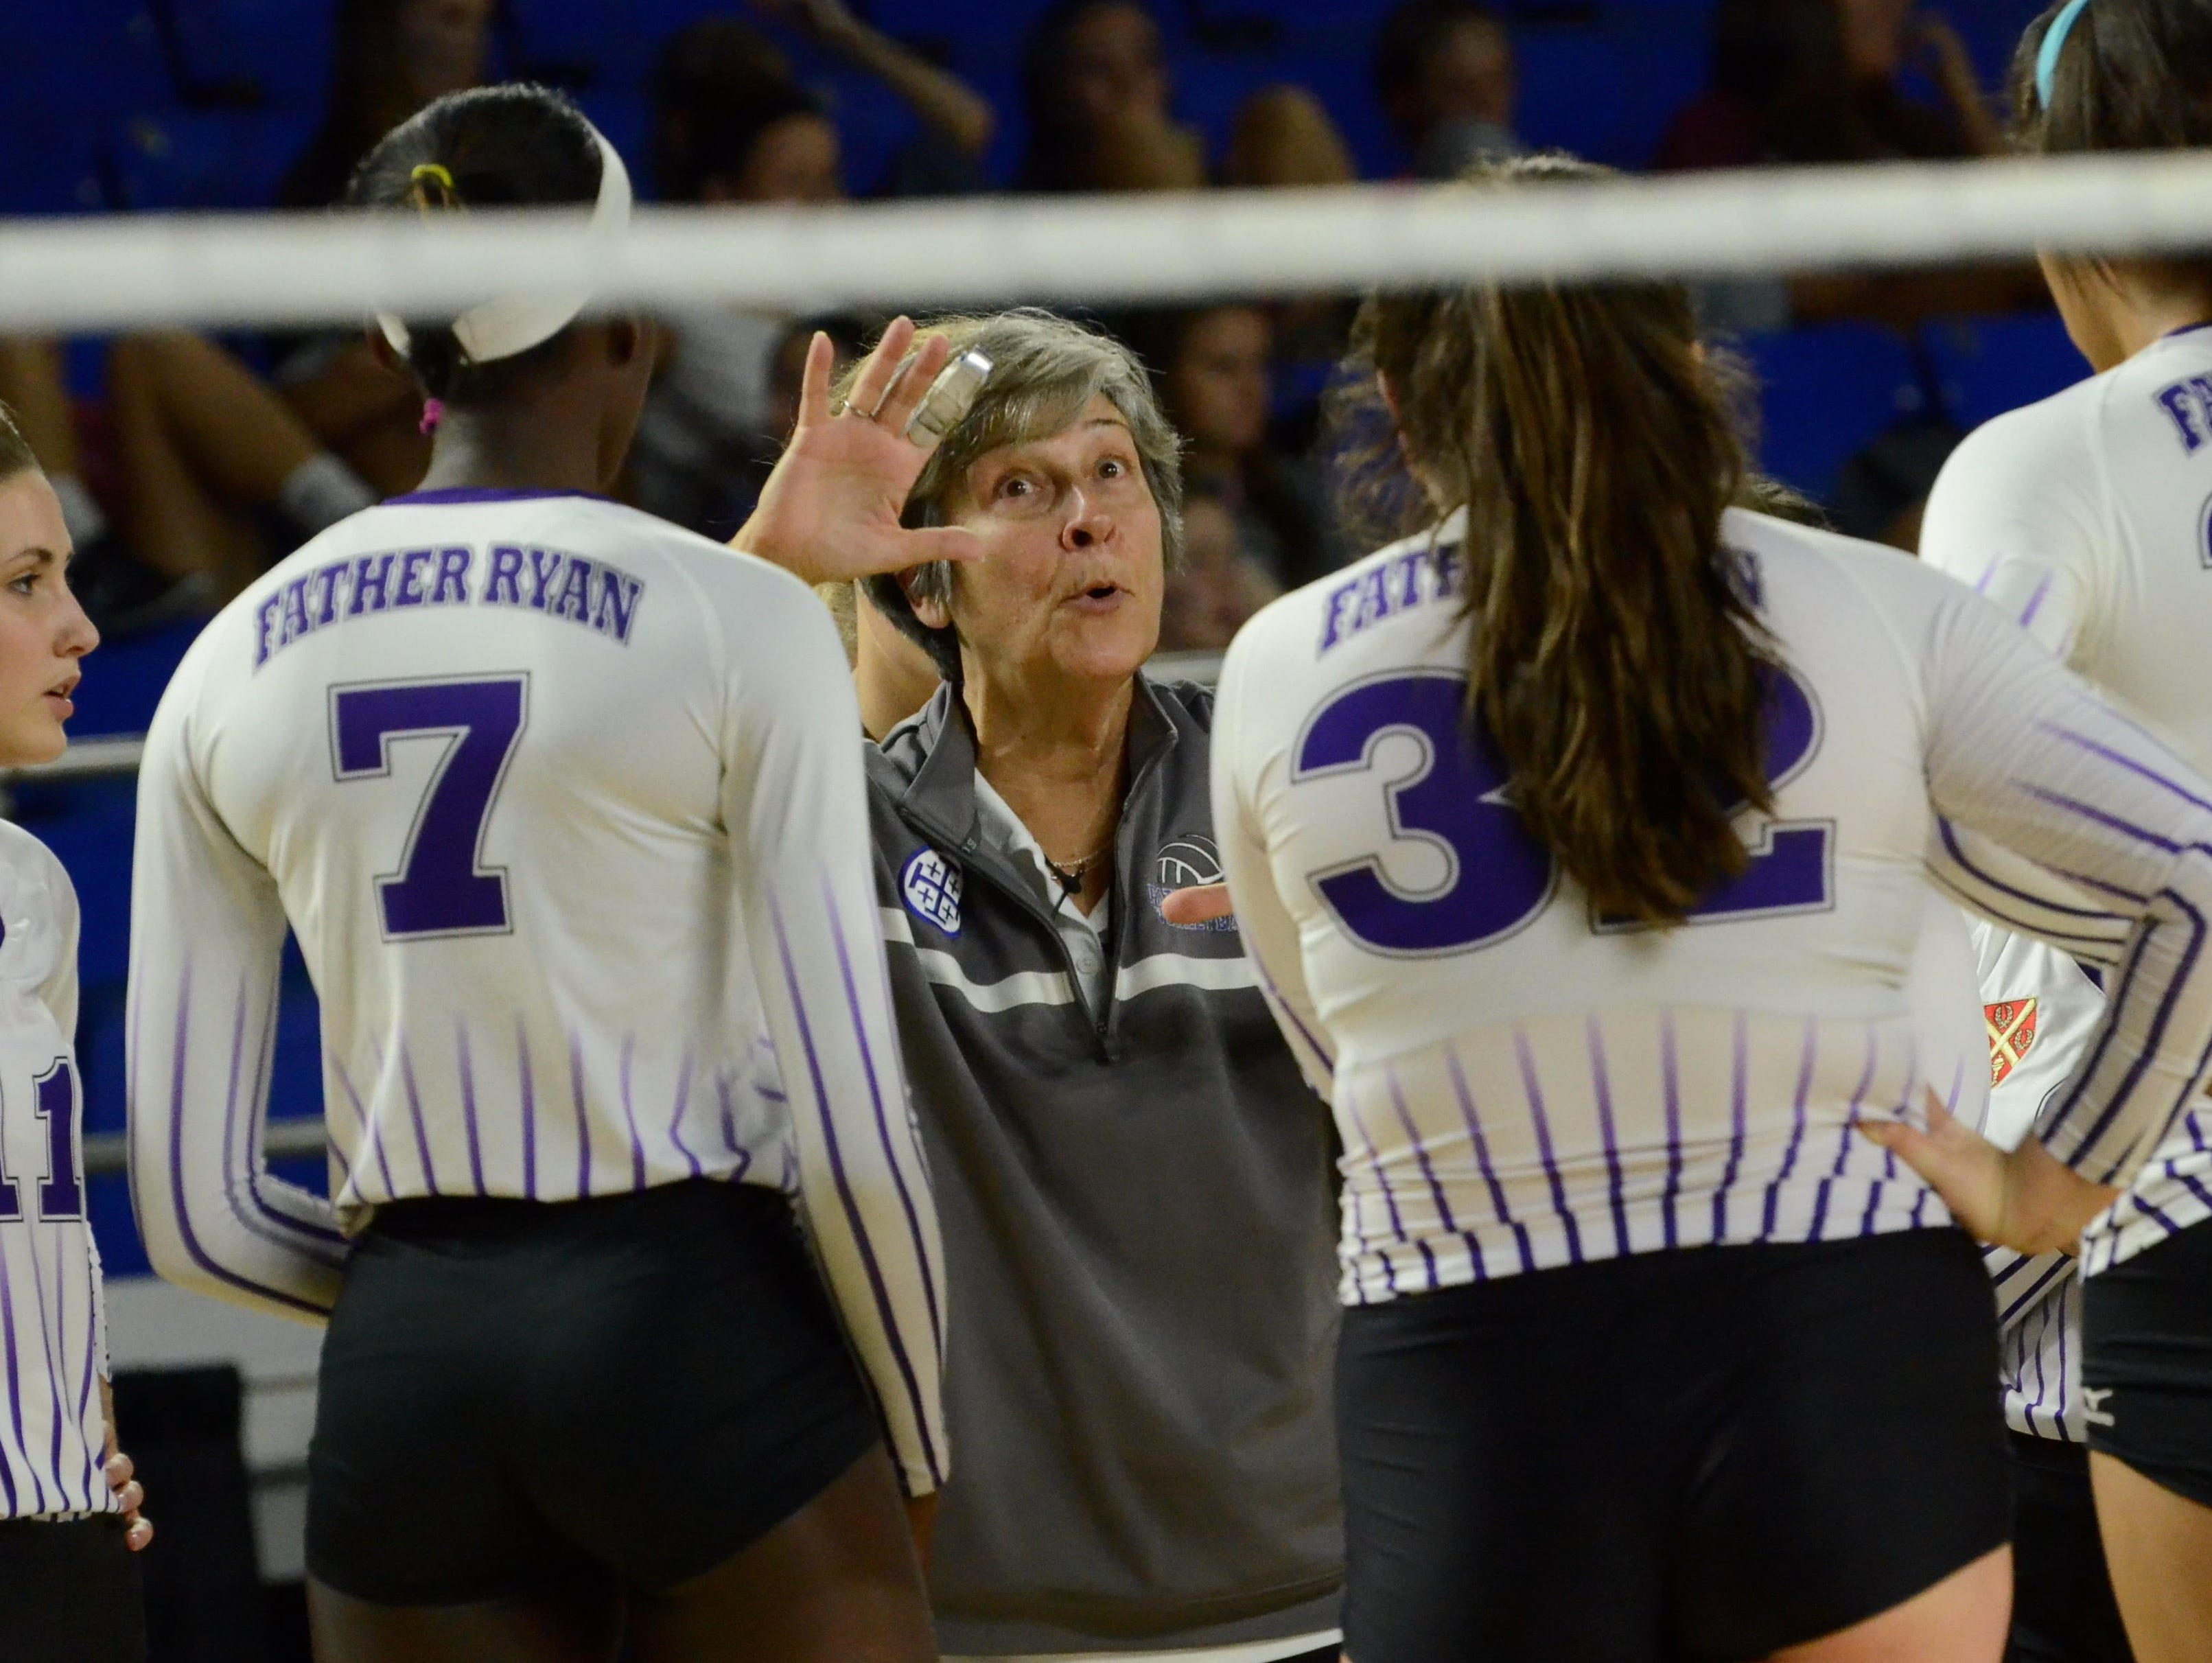 Father Ryan coach Jinx Cockerham talks to her team in a timeout during Thursday's winner's bracket final against Baylor at MTSU's Murphy Center.